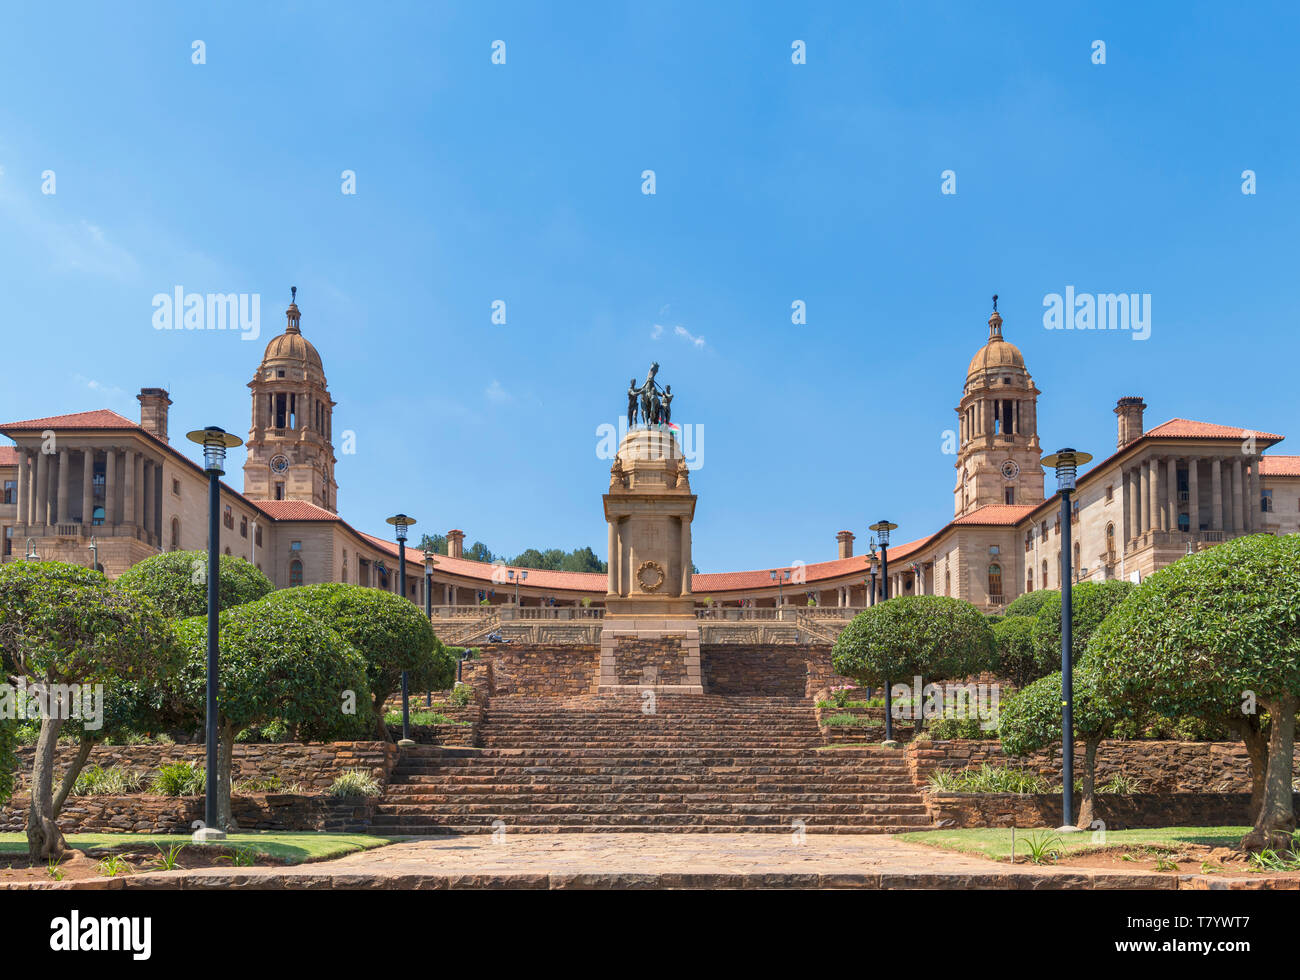 Union Buildings, housing the presidential offices and administrative government headquarters, Pretoria, Gauteng, South Africa - Stock Image